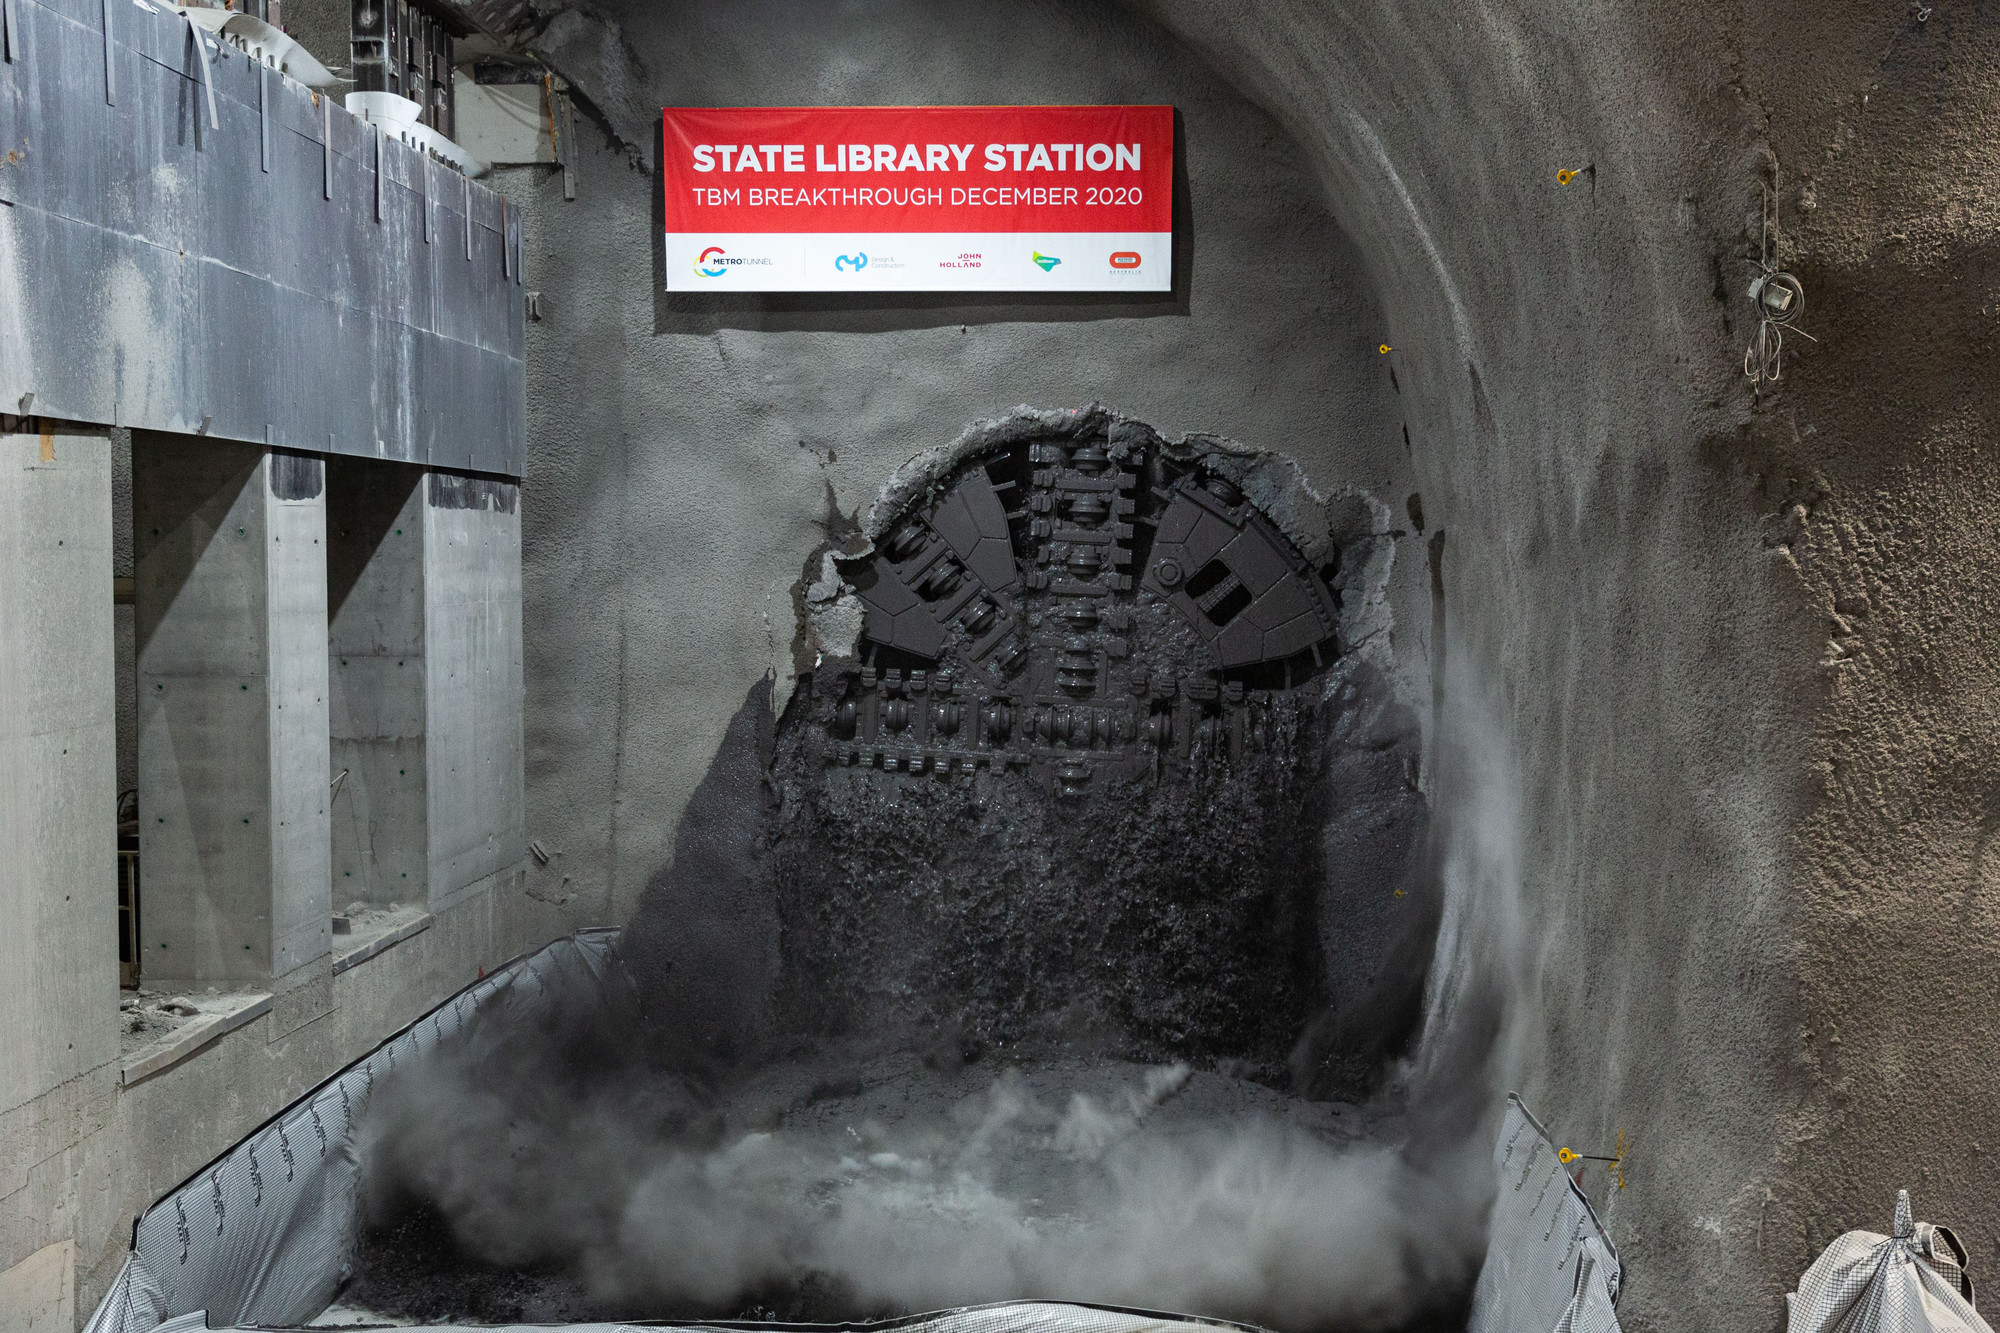 TBM Joan breakthrough at State Library Station December 2020